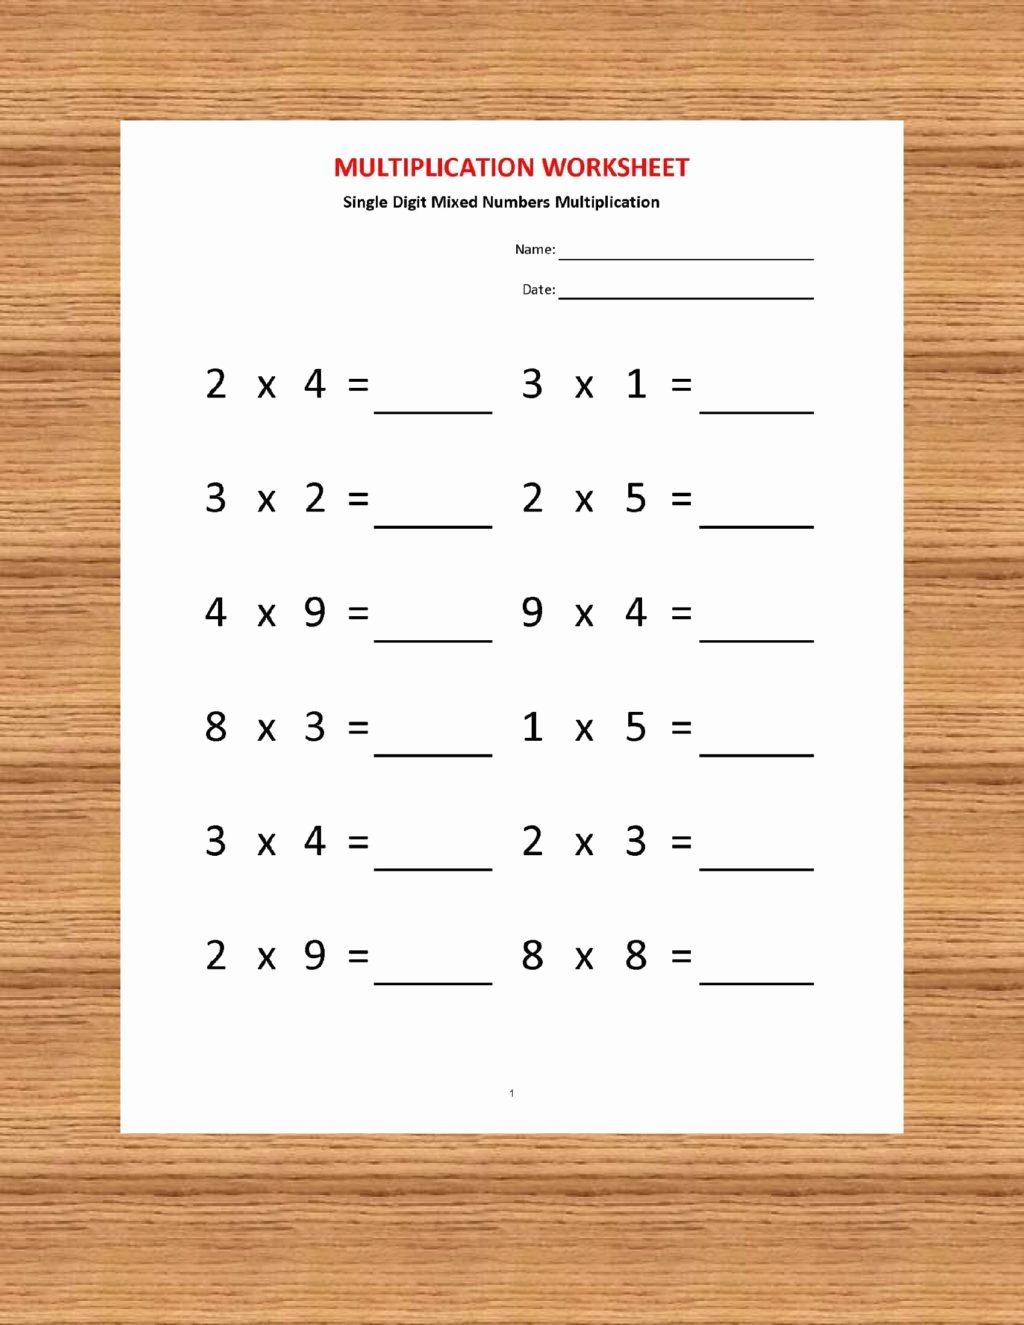 Multiplication Worksheets 2nd Grade Fresh Worksheet 2nd Gradetiplication Worksheets Printable